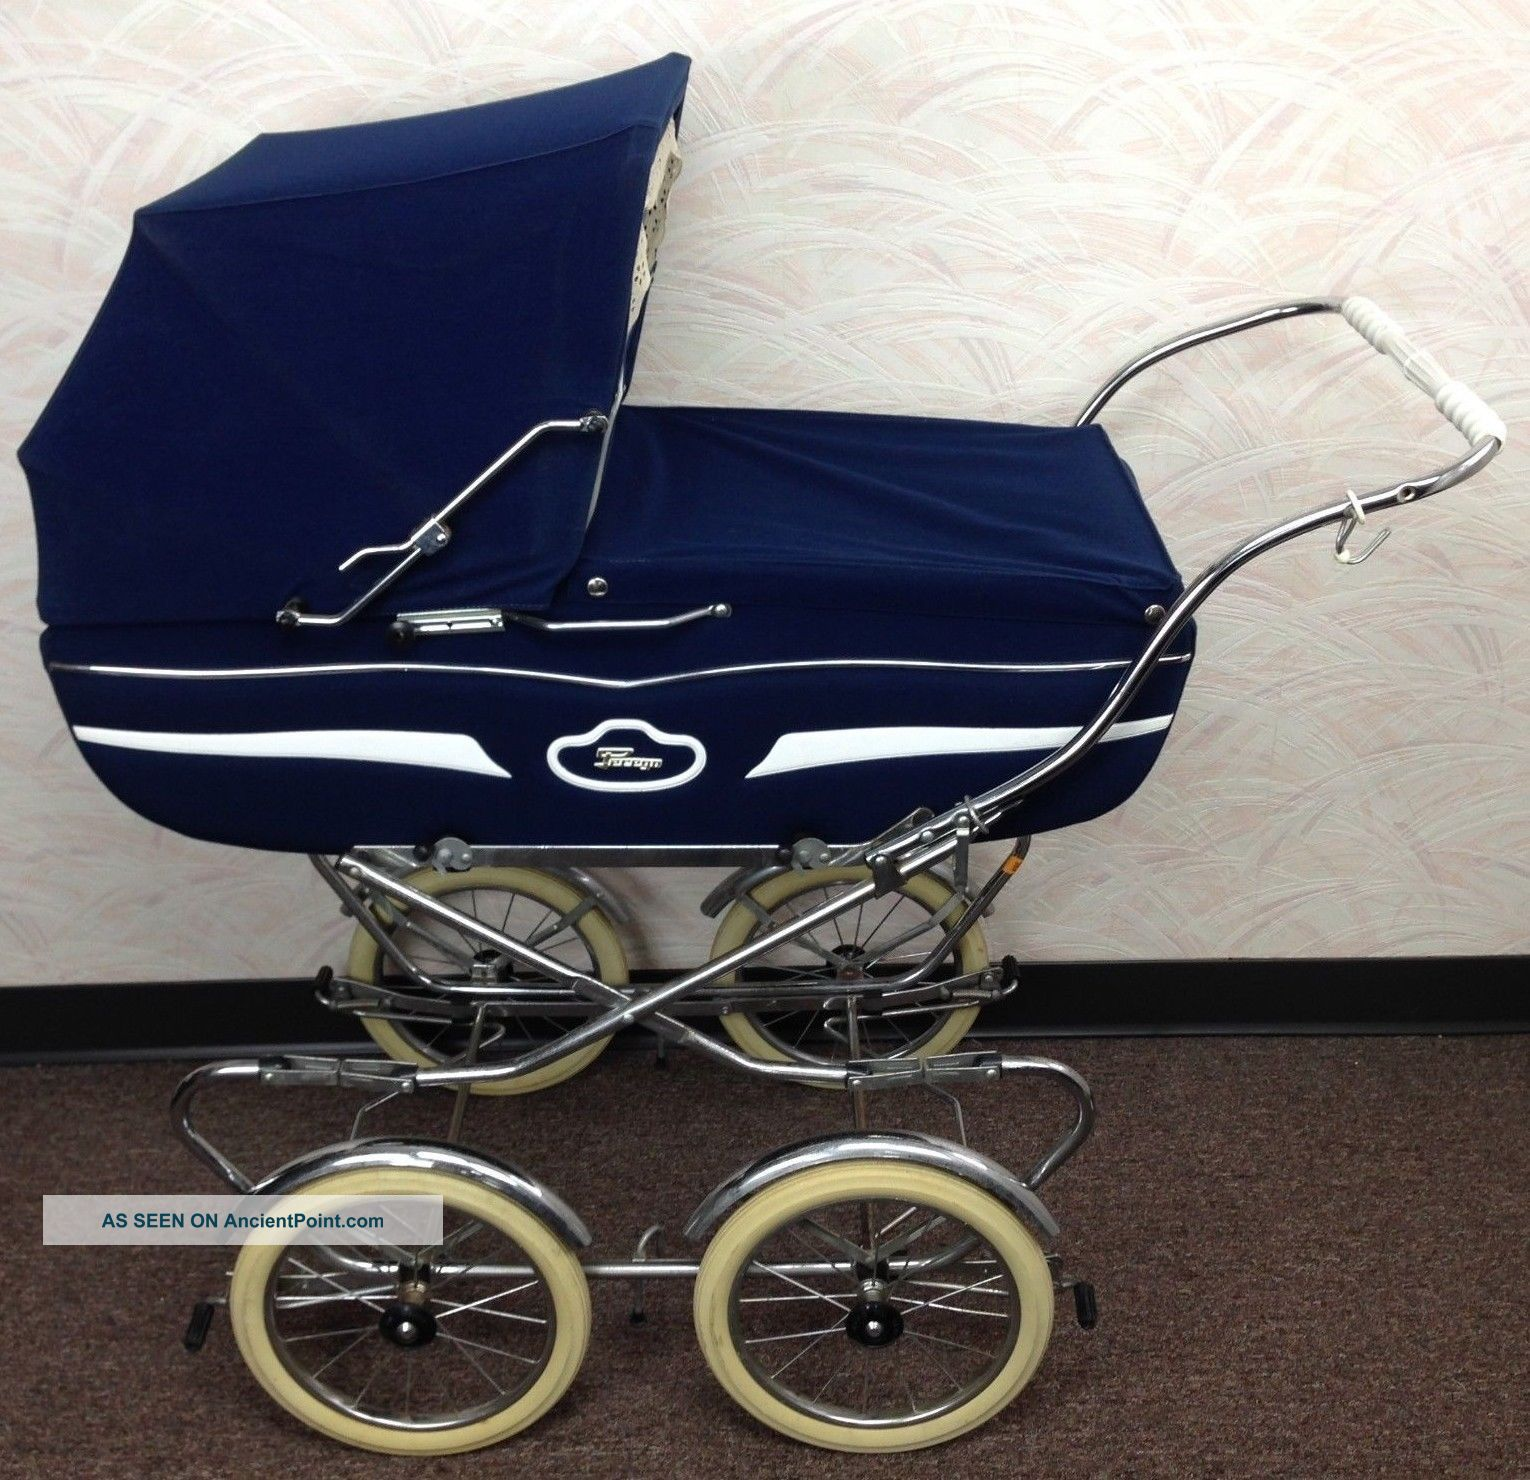 Vintage Perego Navy Blue Italian Stroller Baby Carriage Buggy - Baby Carriages & Buggies photo